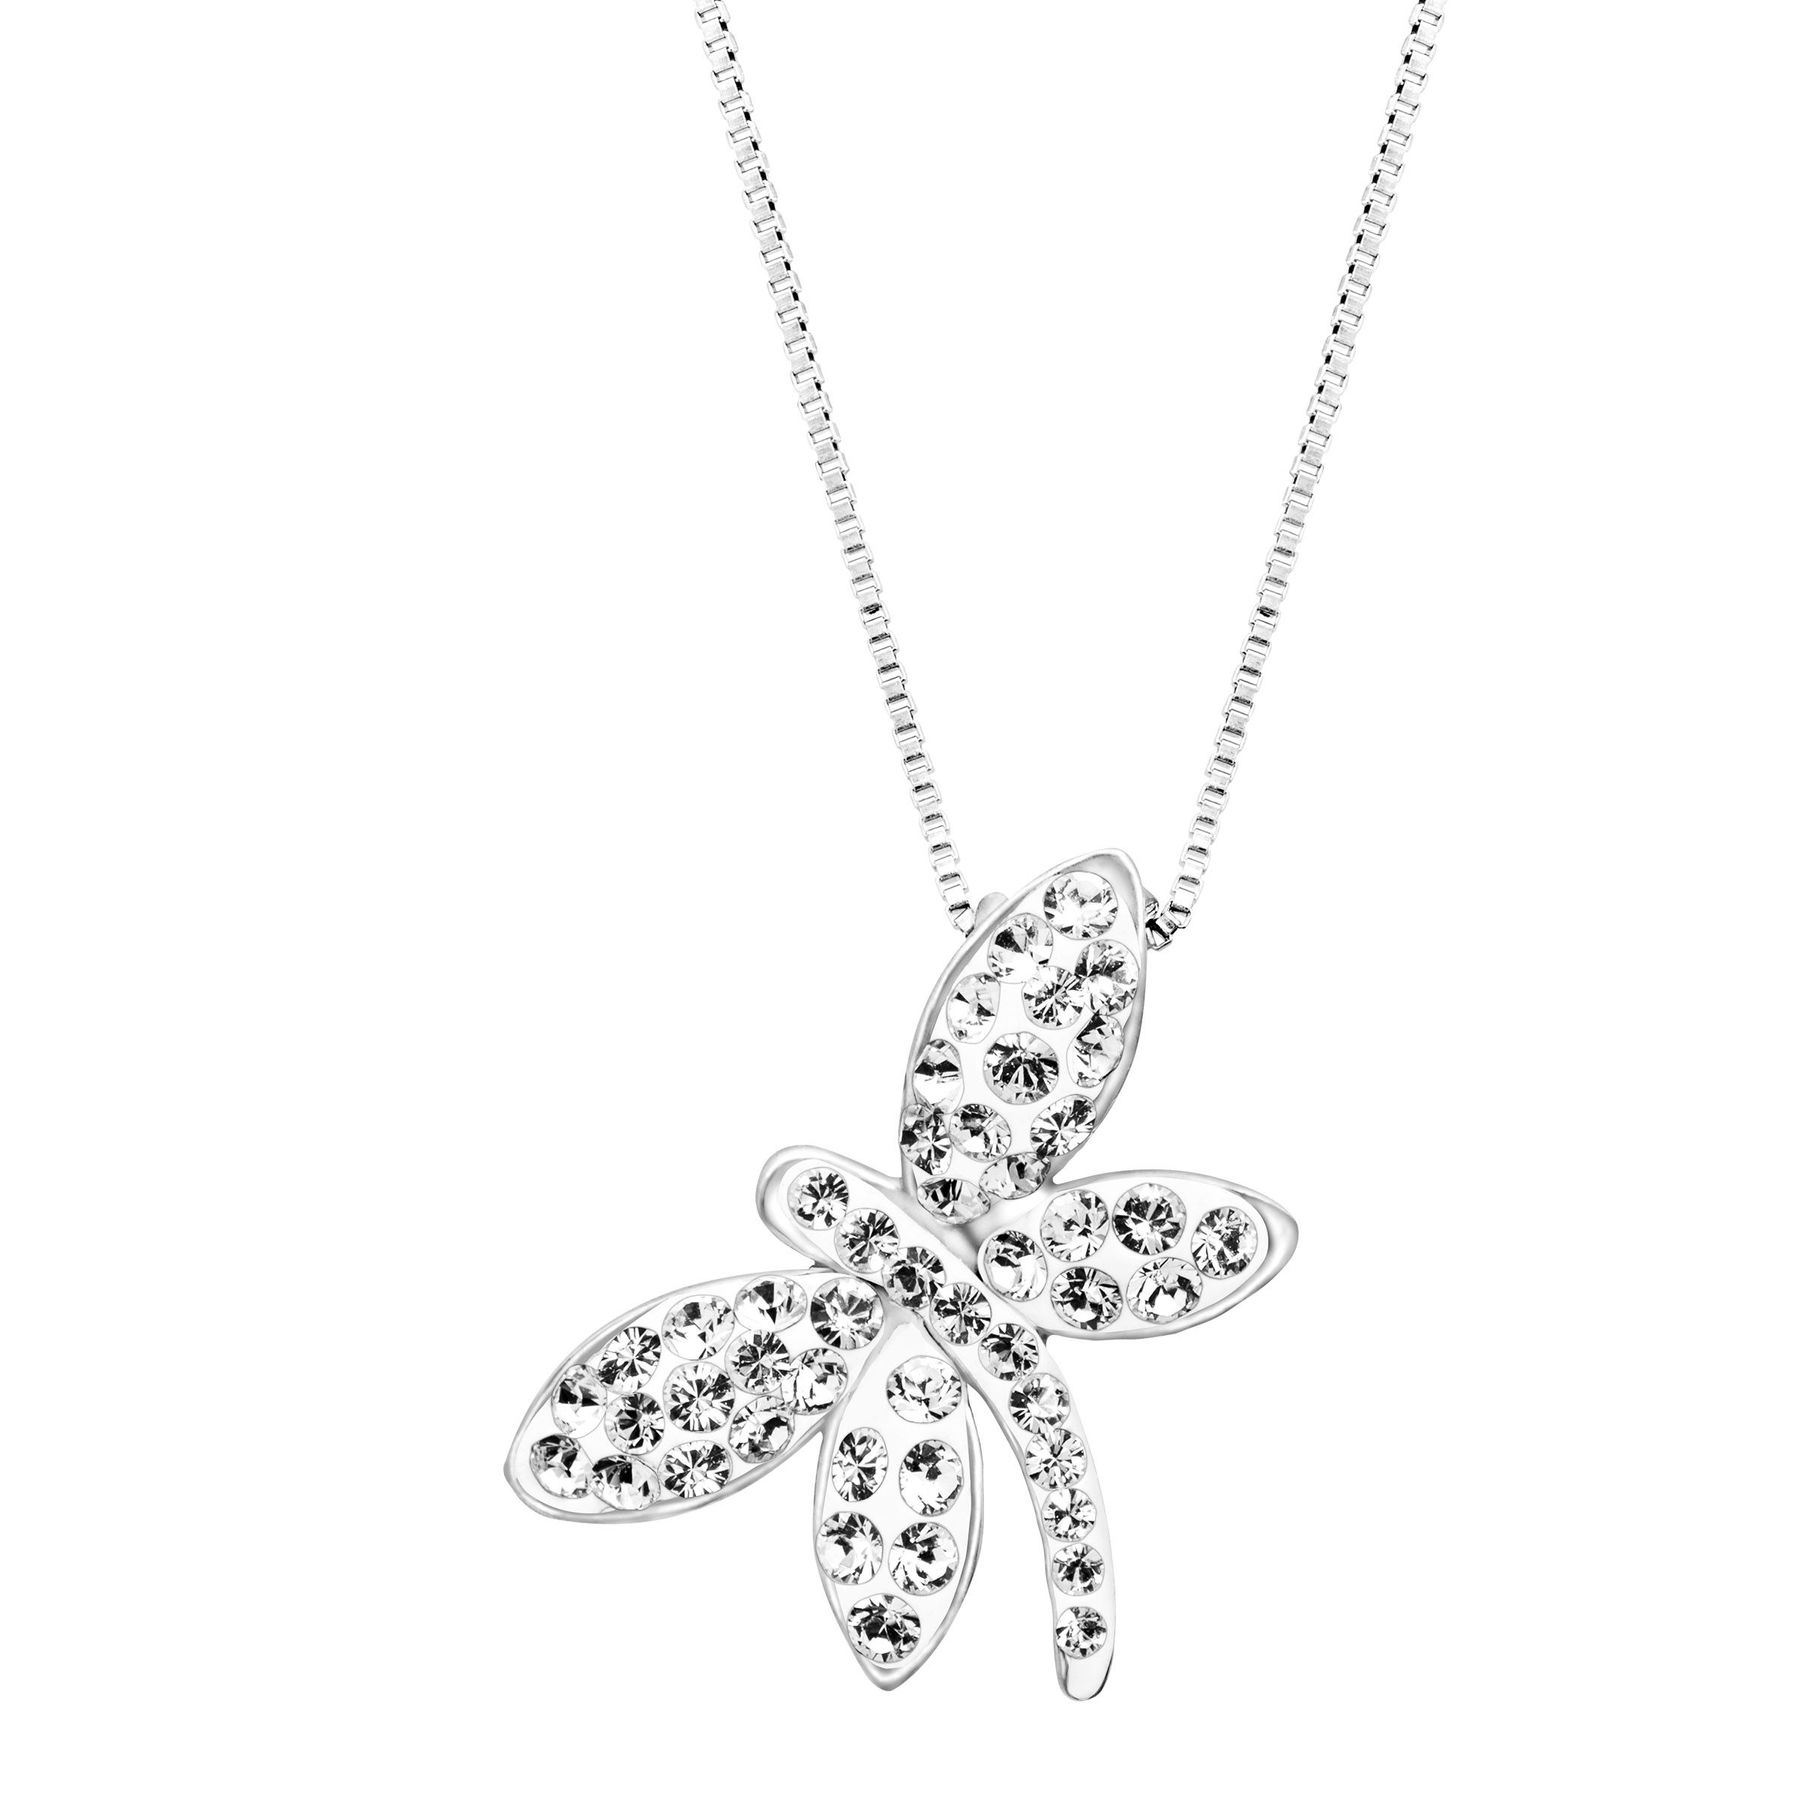 sterling dragonfly jewellery necklace dandy giant rocks image silver products